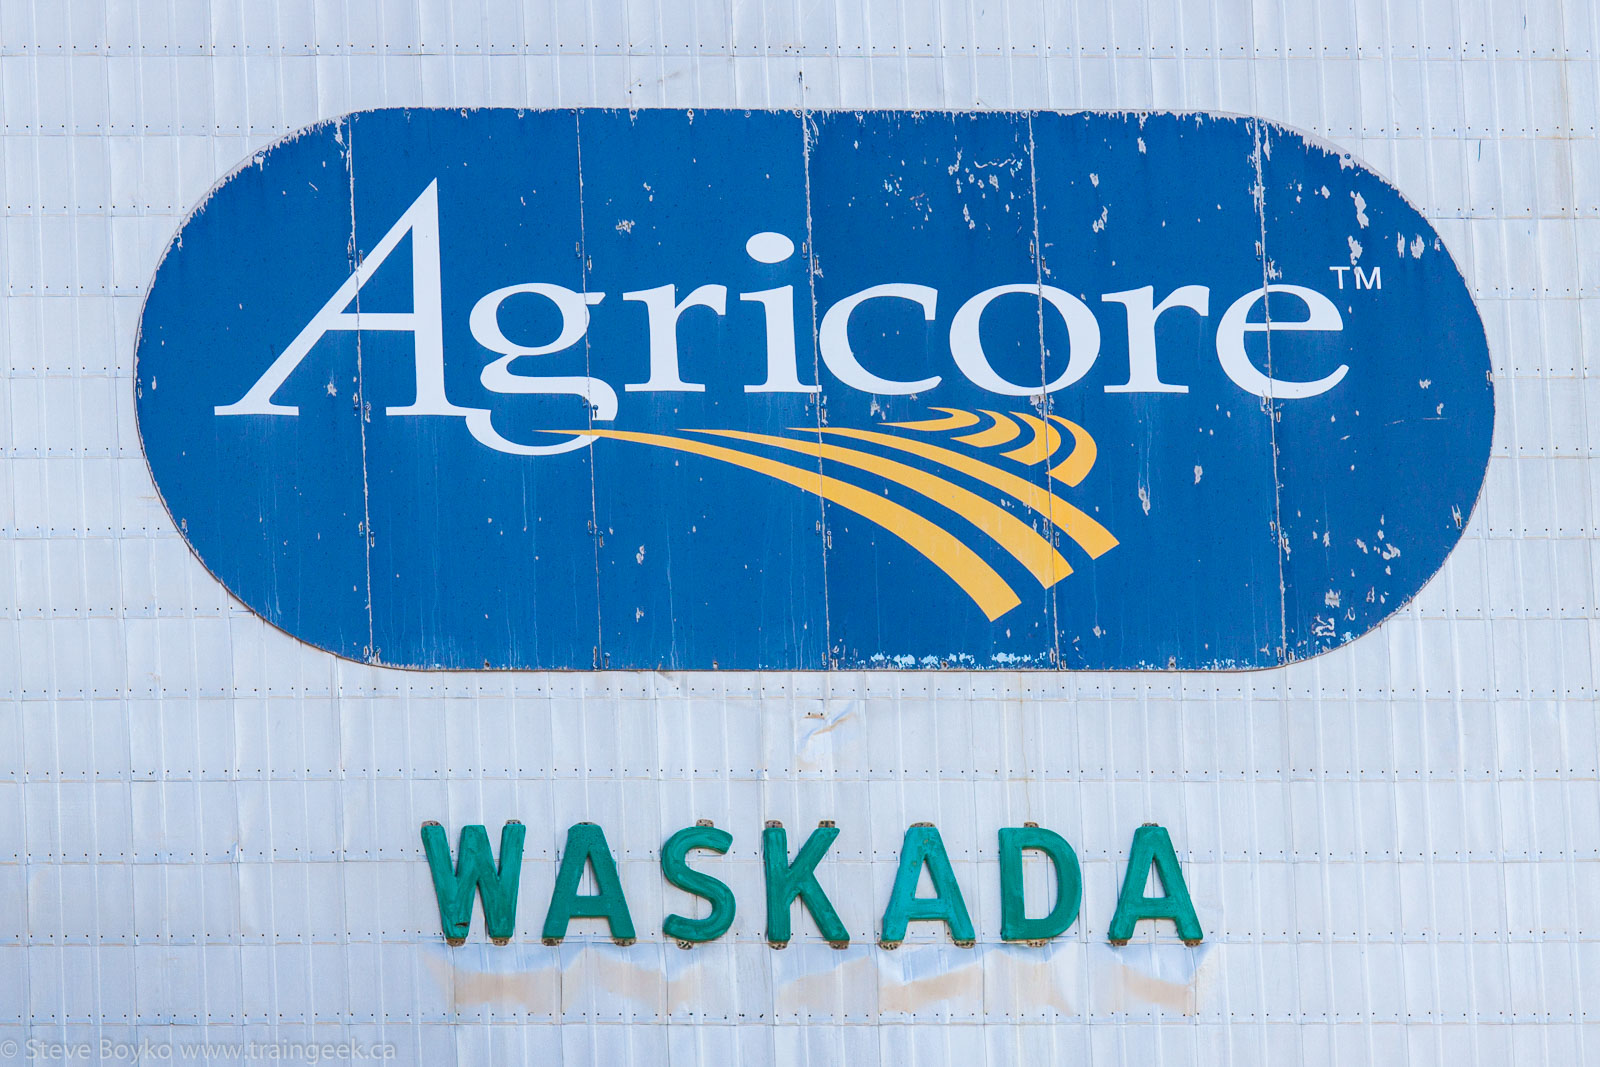 Agricore logo on the Waskada, MB grain elevator 2014/08/08